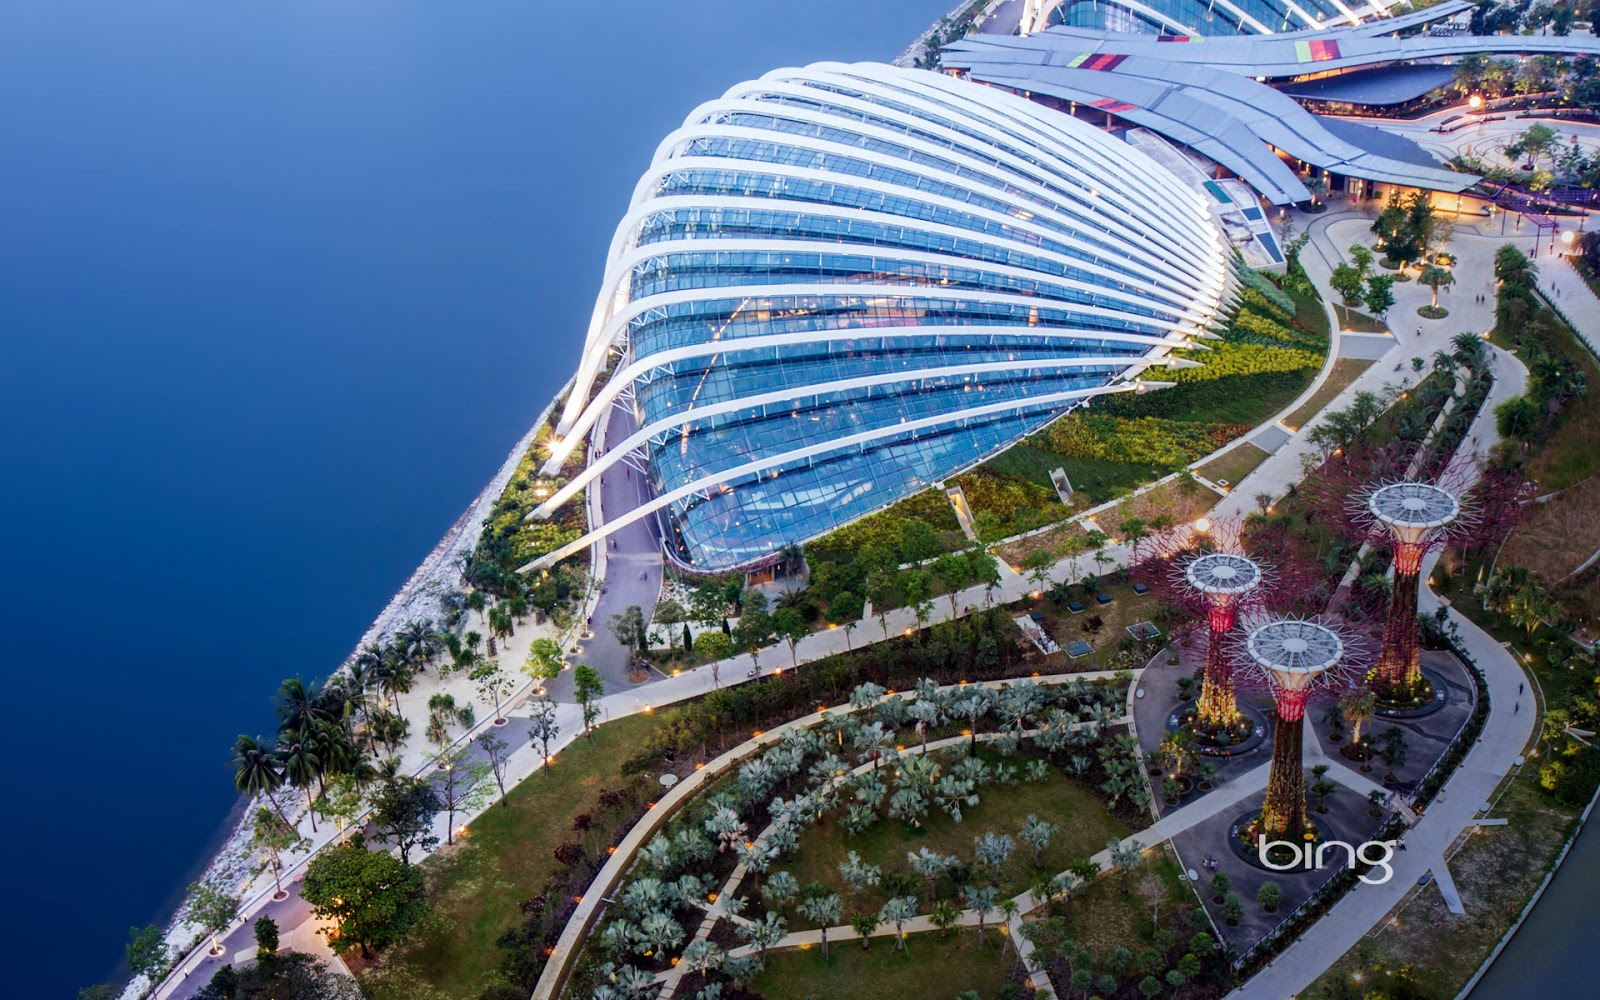 Aerial view of Gardens by the Bay and the Supertrees Grove Singapore 1600x1000